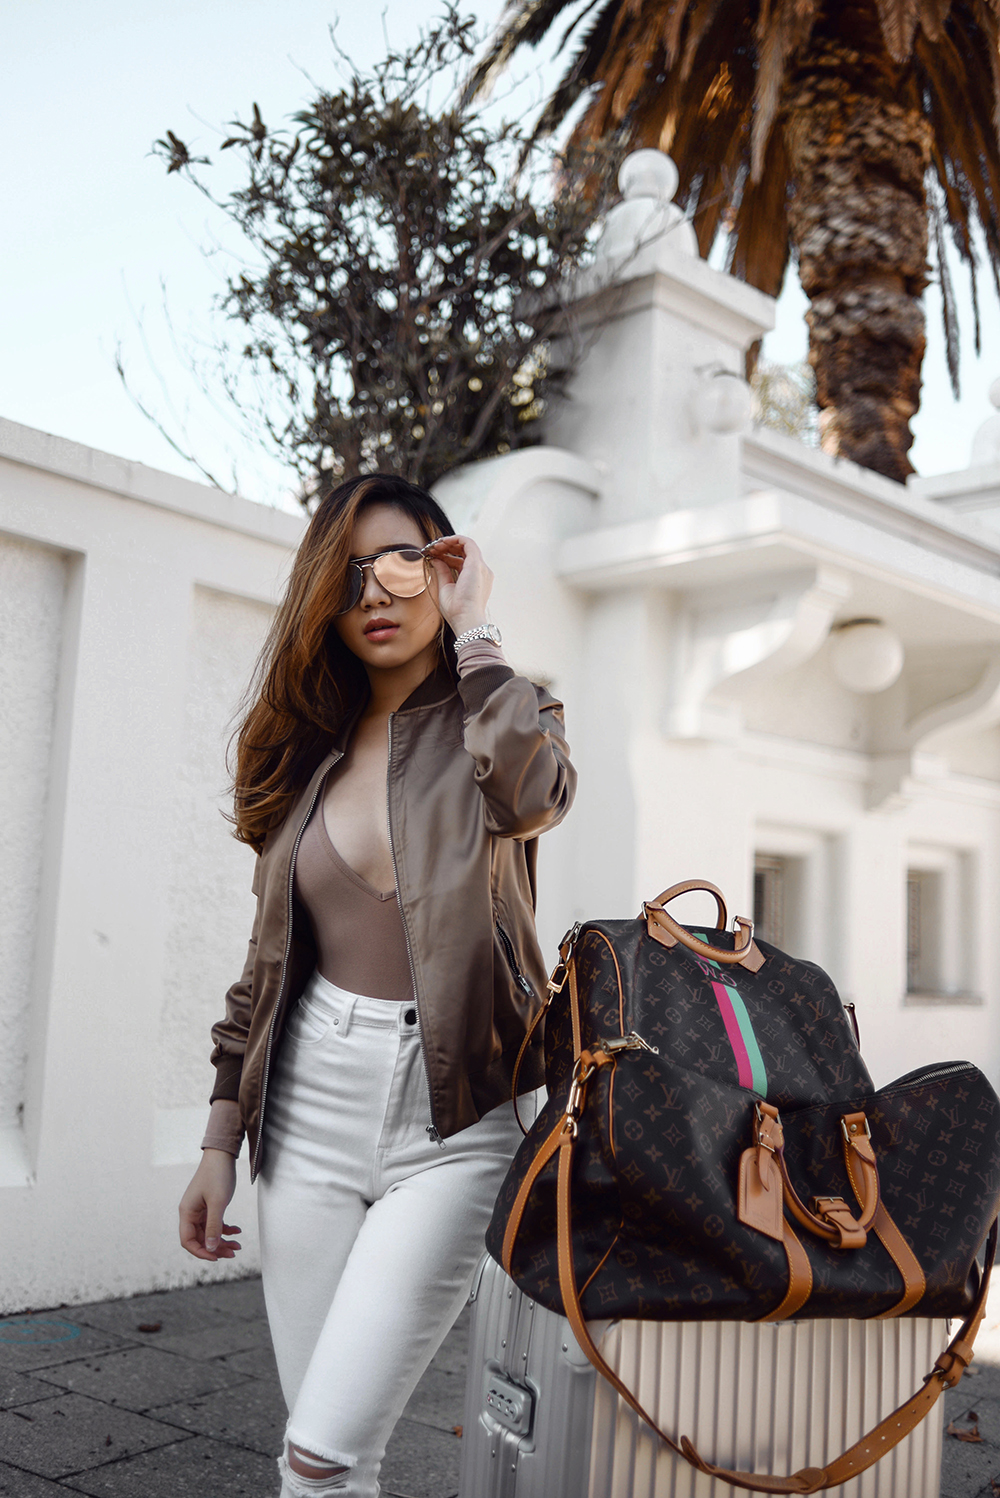 willabelle-ong-paledivision-street-style-fashion-travel-lifestyle-blog-singapore-australia-outfit-editorial-white-denim-jeans-bomber-jacket-louis-vuitton-duffel-bag-rimowa-luggage